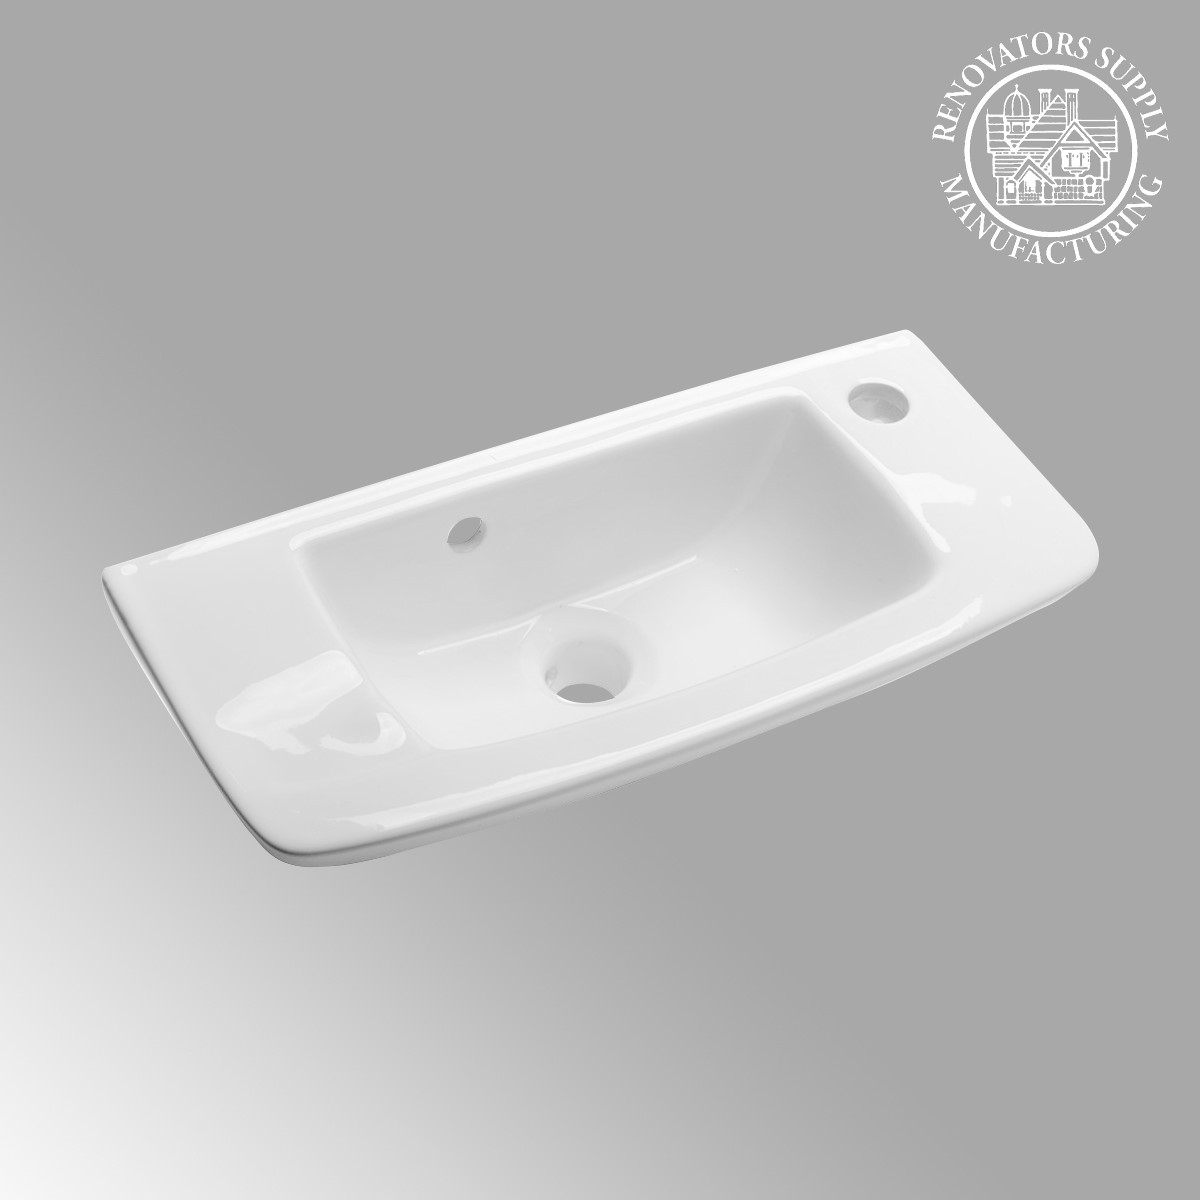 home decor bathroom signs.htm edgewood 20  wall mounted bathroom sink white with overflow  edgewood 20  wall mounted bathroom sink